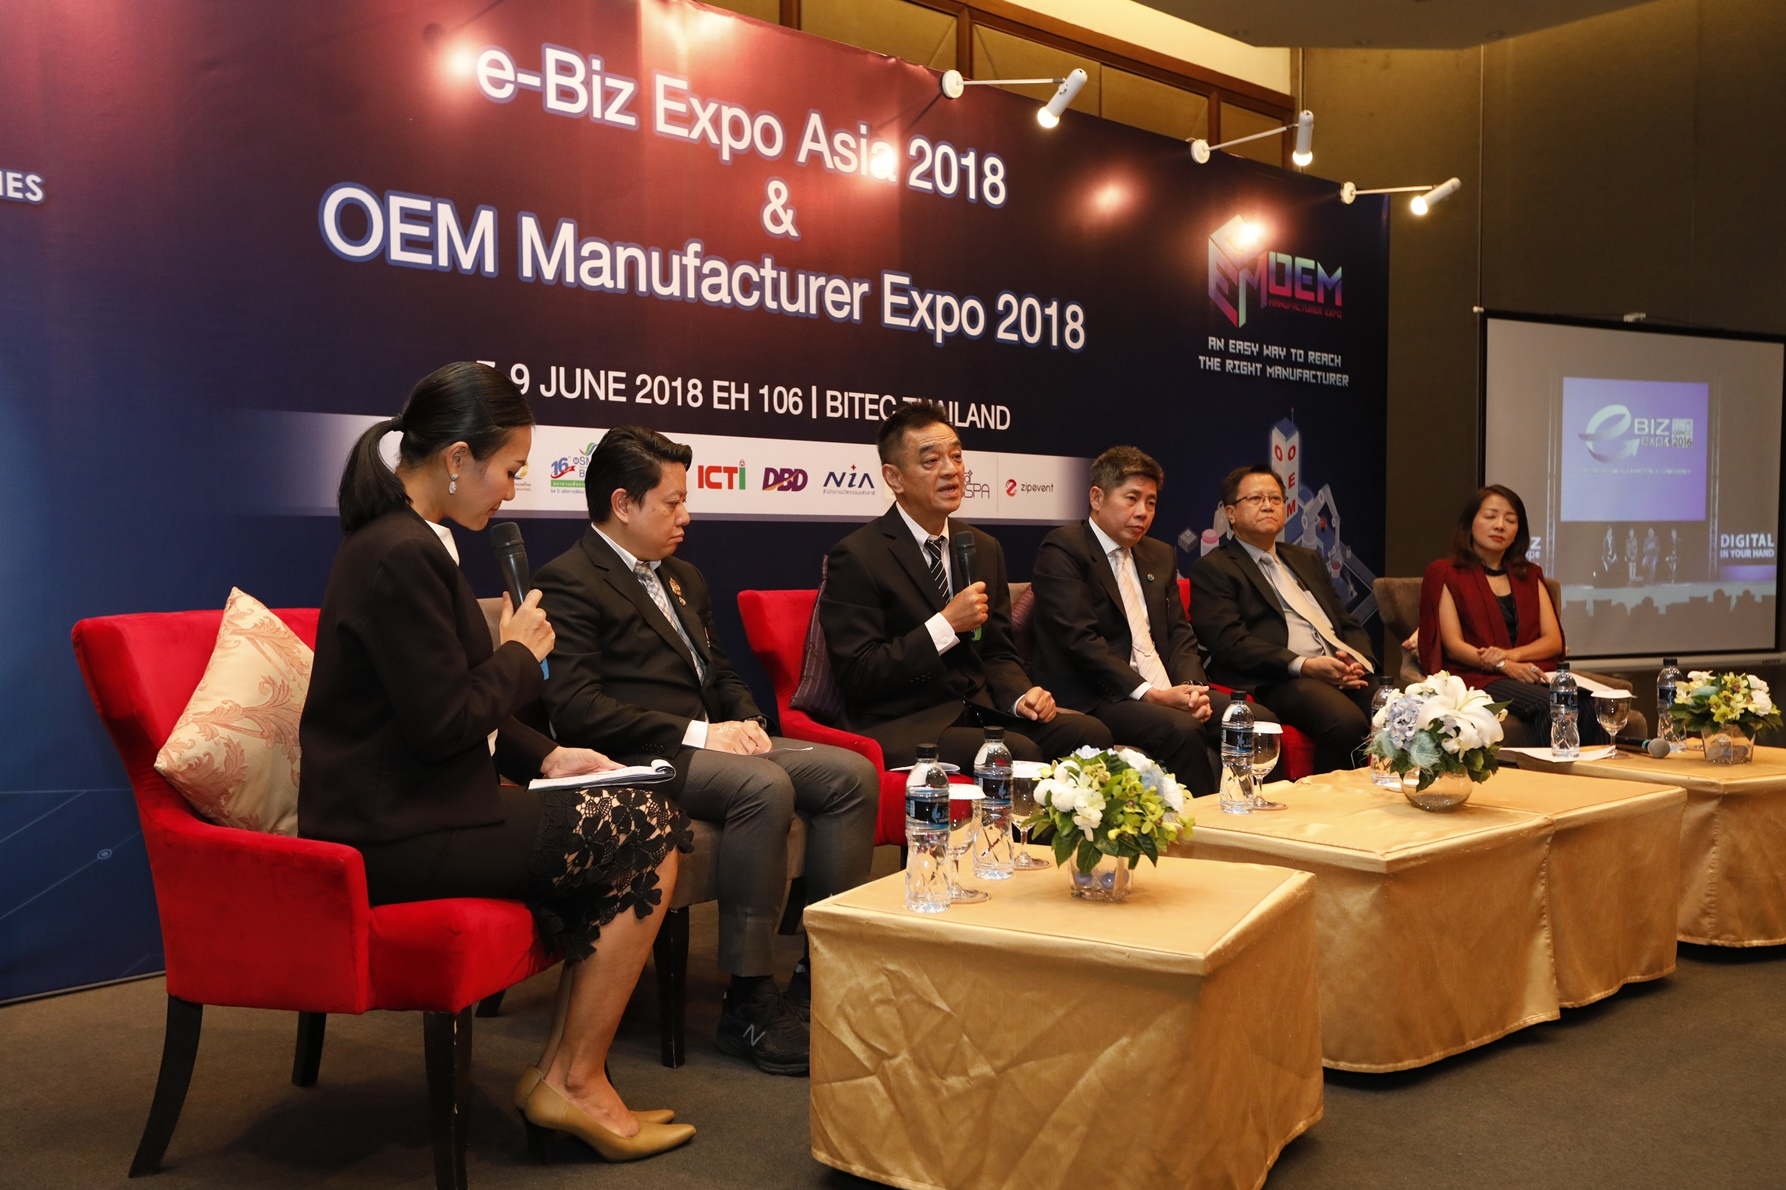 e-Biz Expo Asia 2018 และ OEM Manufacturer Expo 2018